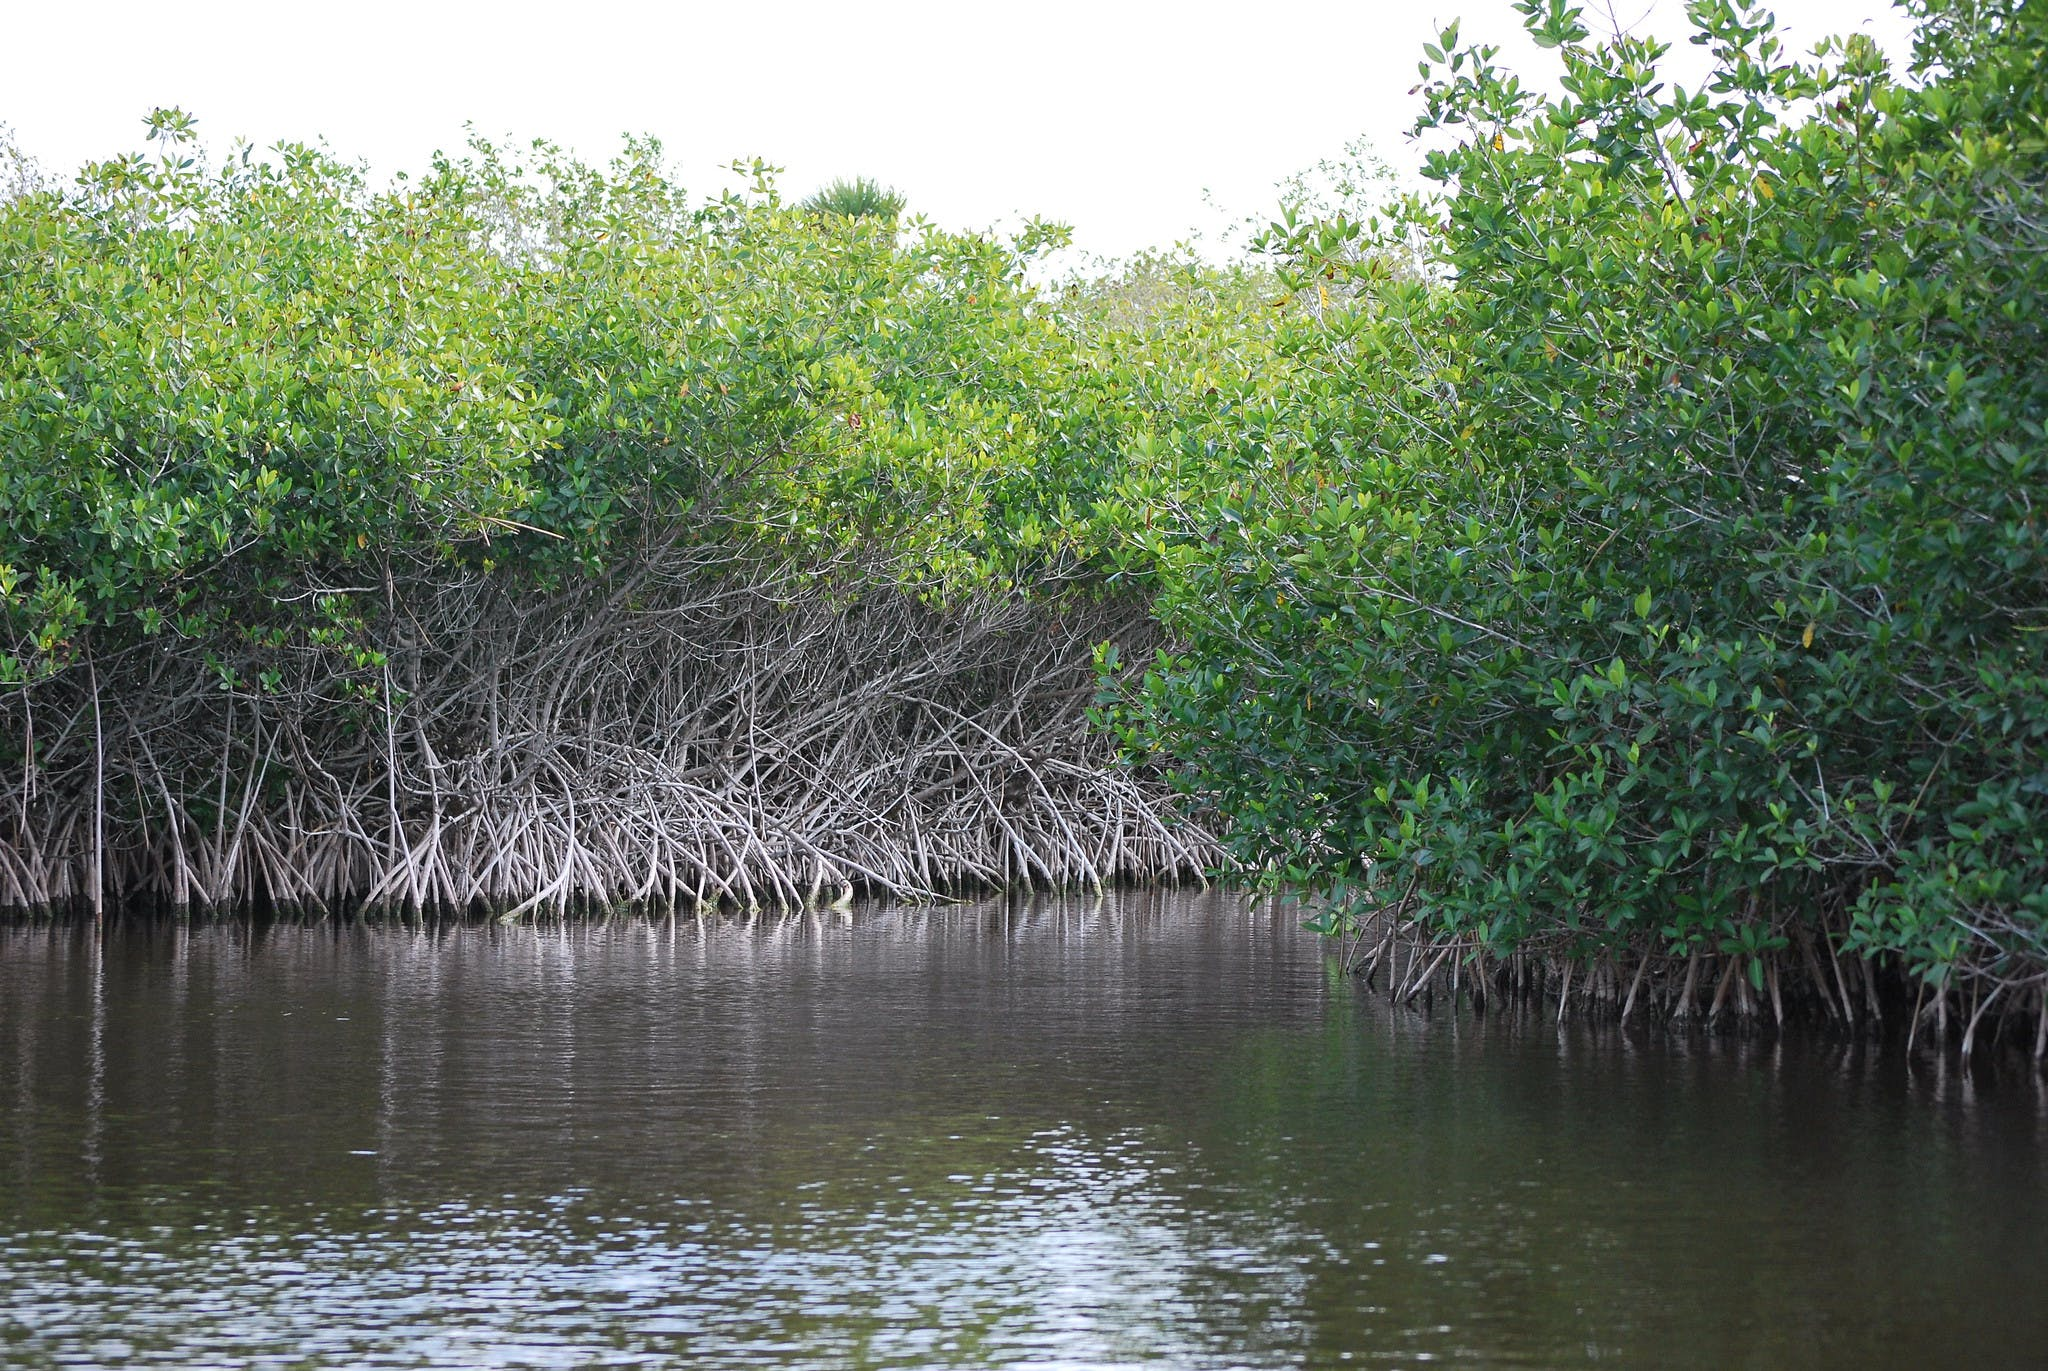 A mangrove forest in the Everglades.